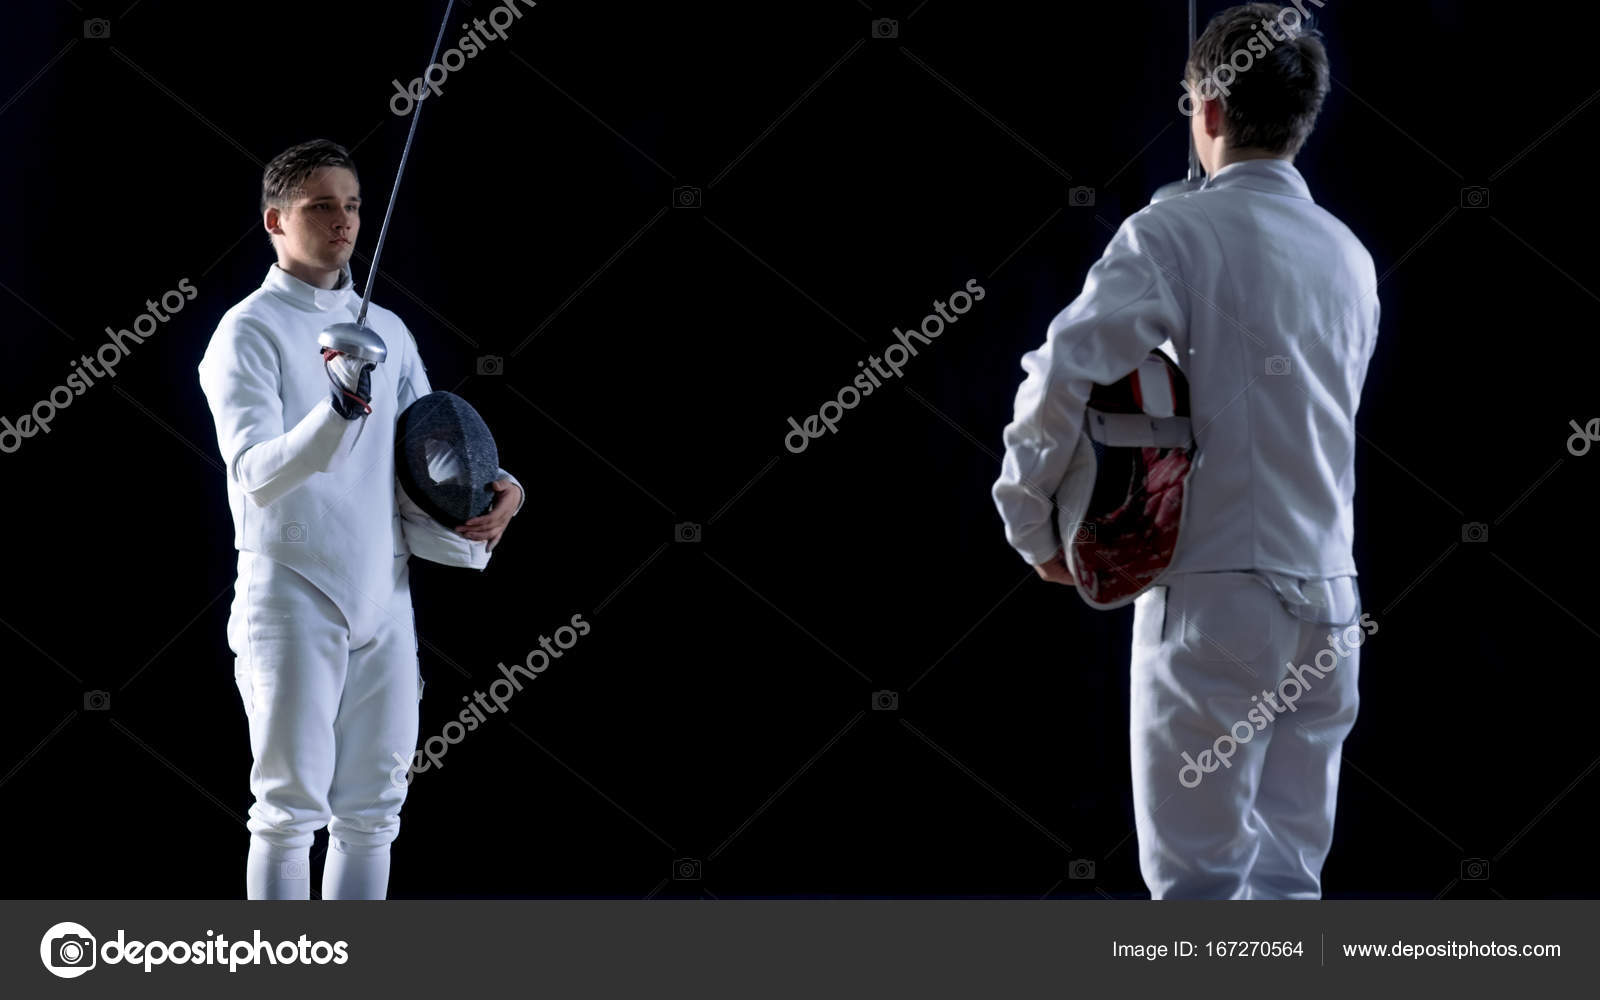 Two Young Fencers Greet Audience and Each Other Before